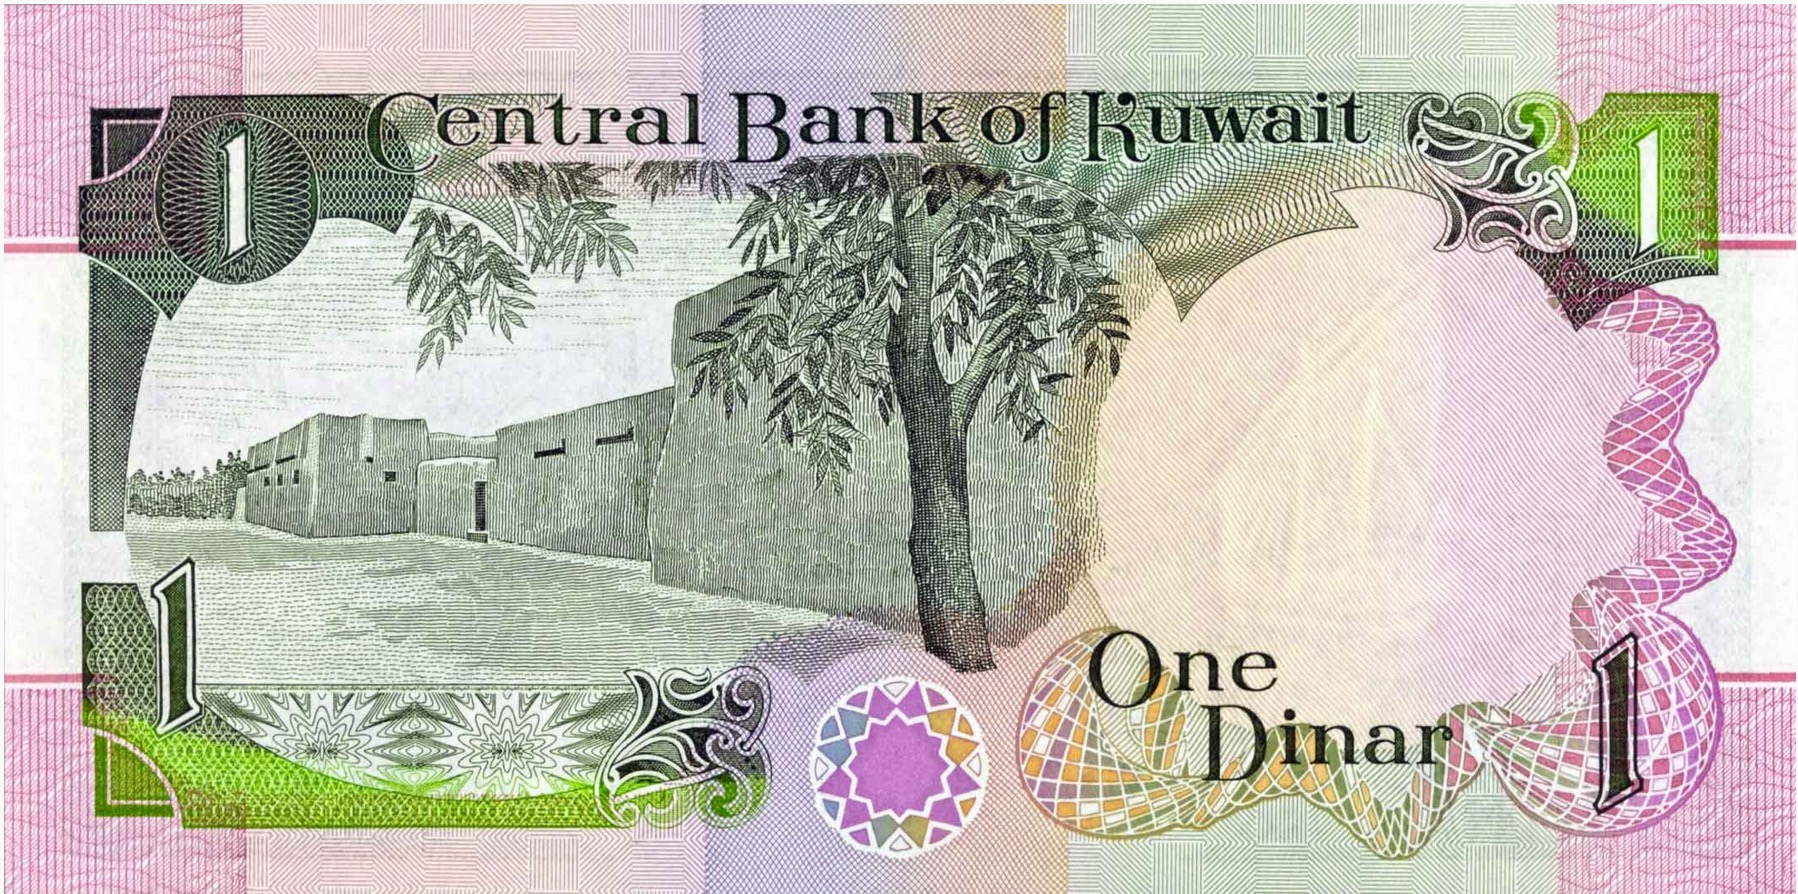 1 Dinar Kuwait banknote (4th Issue)